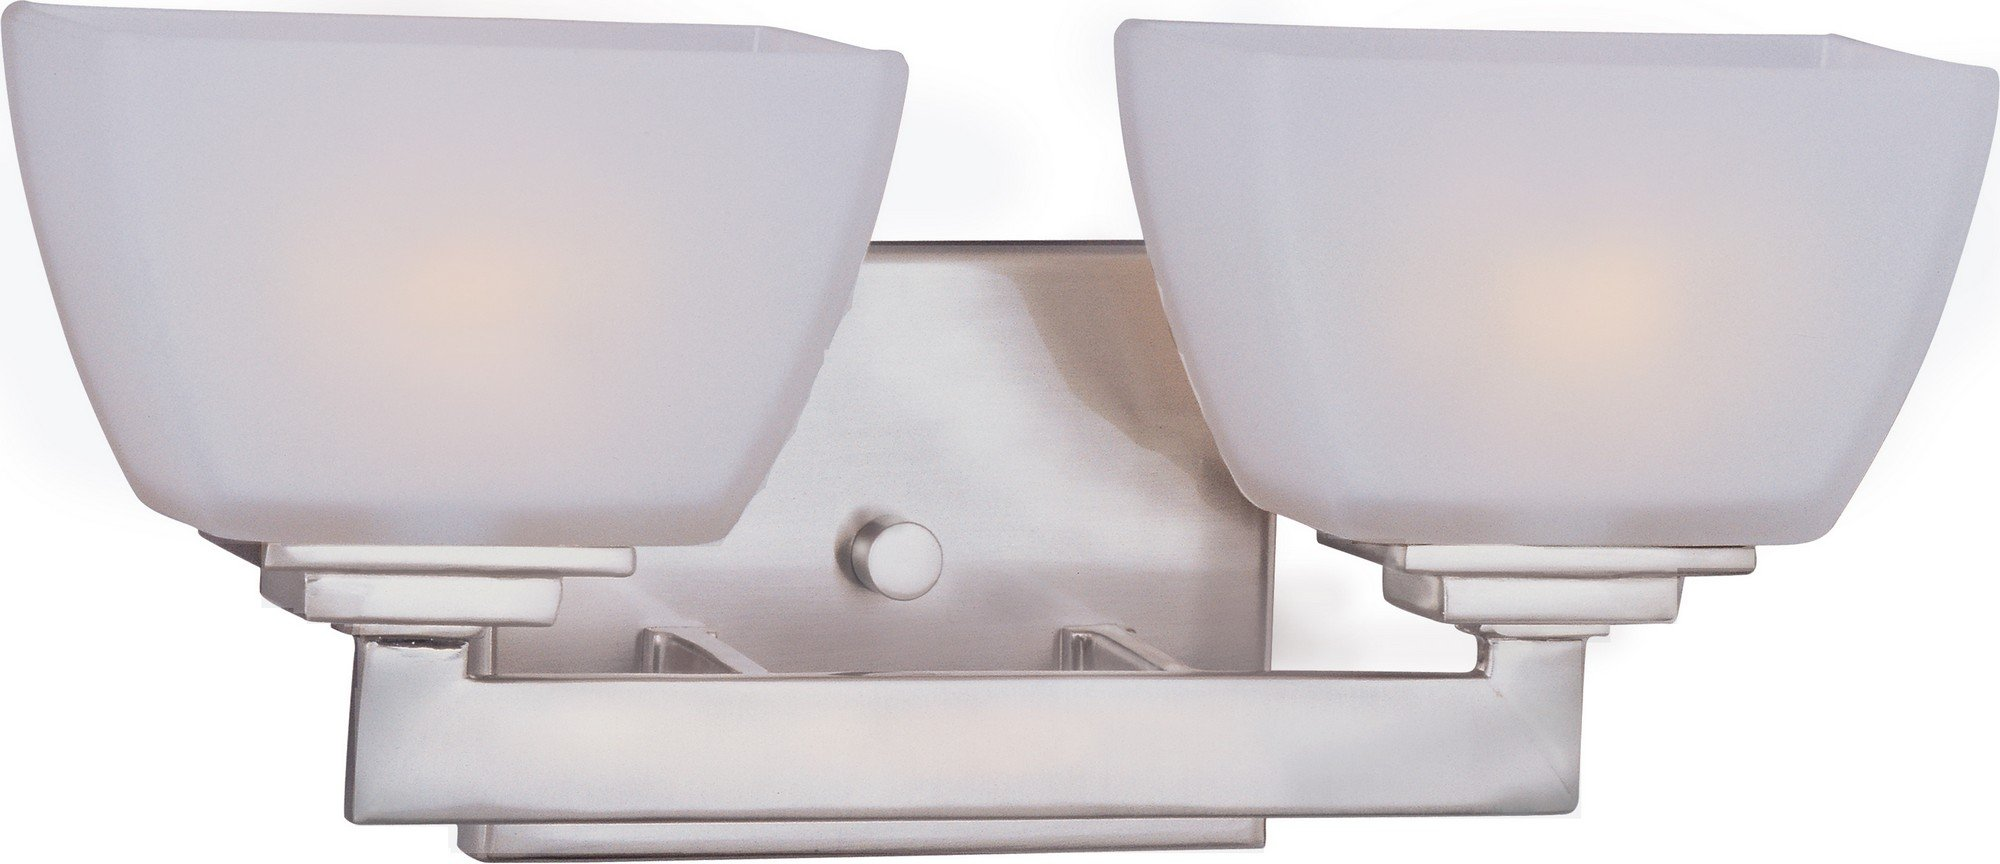 Maxim 9032SWSN Angle 2-Light Bath Vanity Wall Sconce, Satin Nickel Finish, Satin White Glass, G9 Frost Xenon Xenon Bulb , 100W Max., Damp Safety Rating, 2700K Color Temp, Standard Dimmable, Glass Shade Material, 1150 Rated Lumens